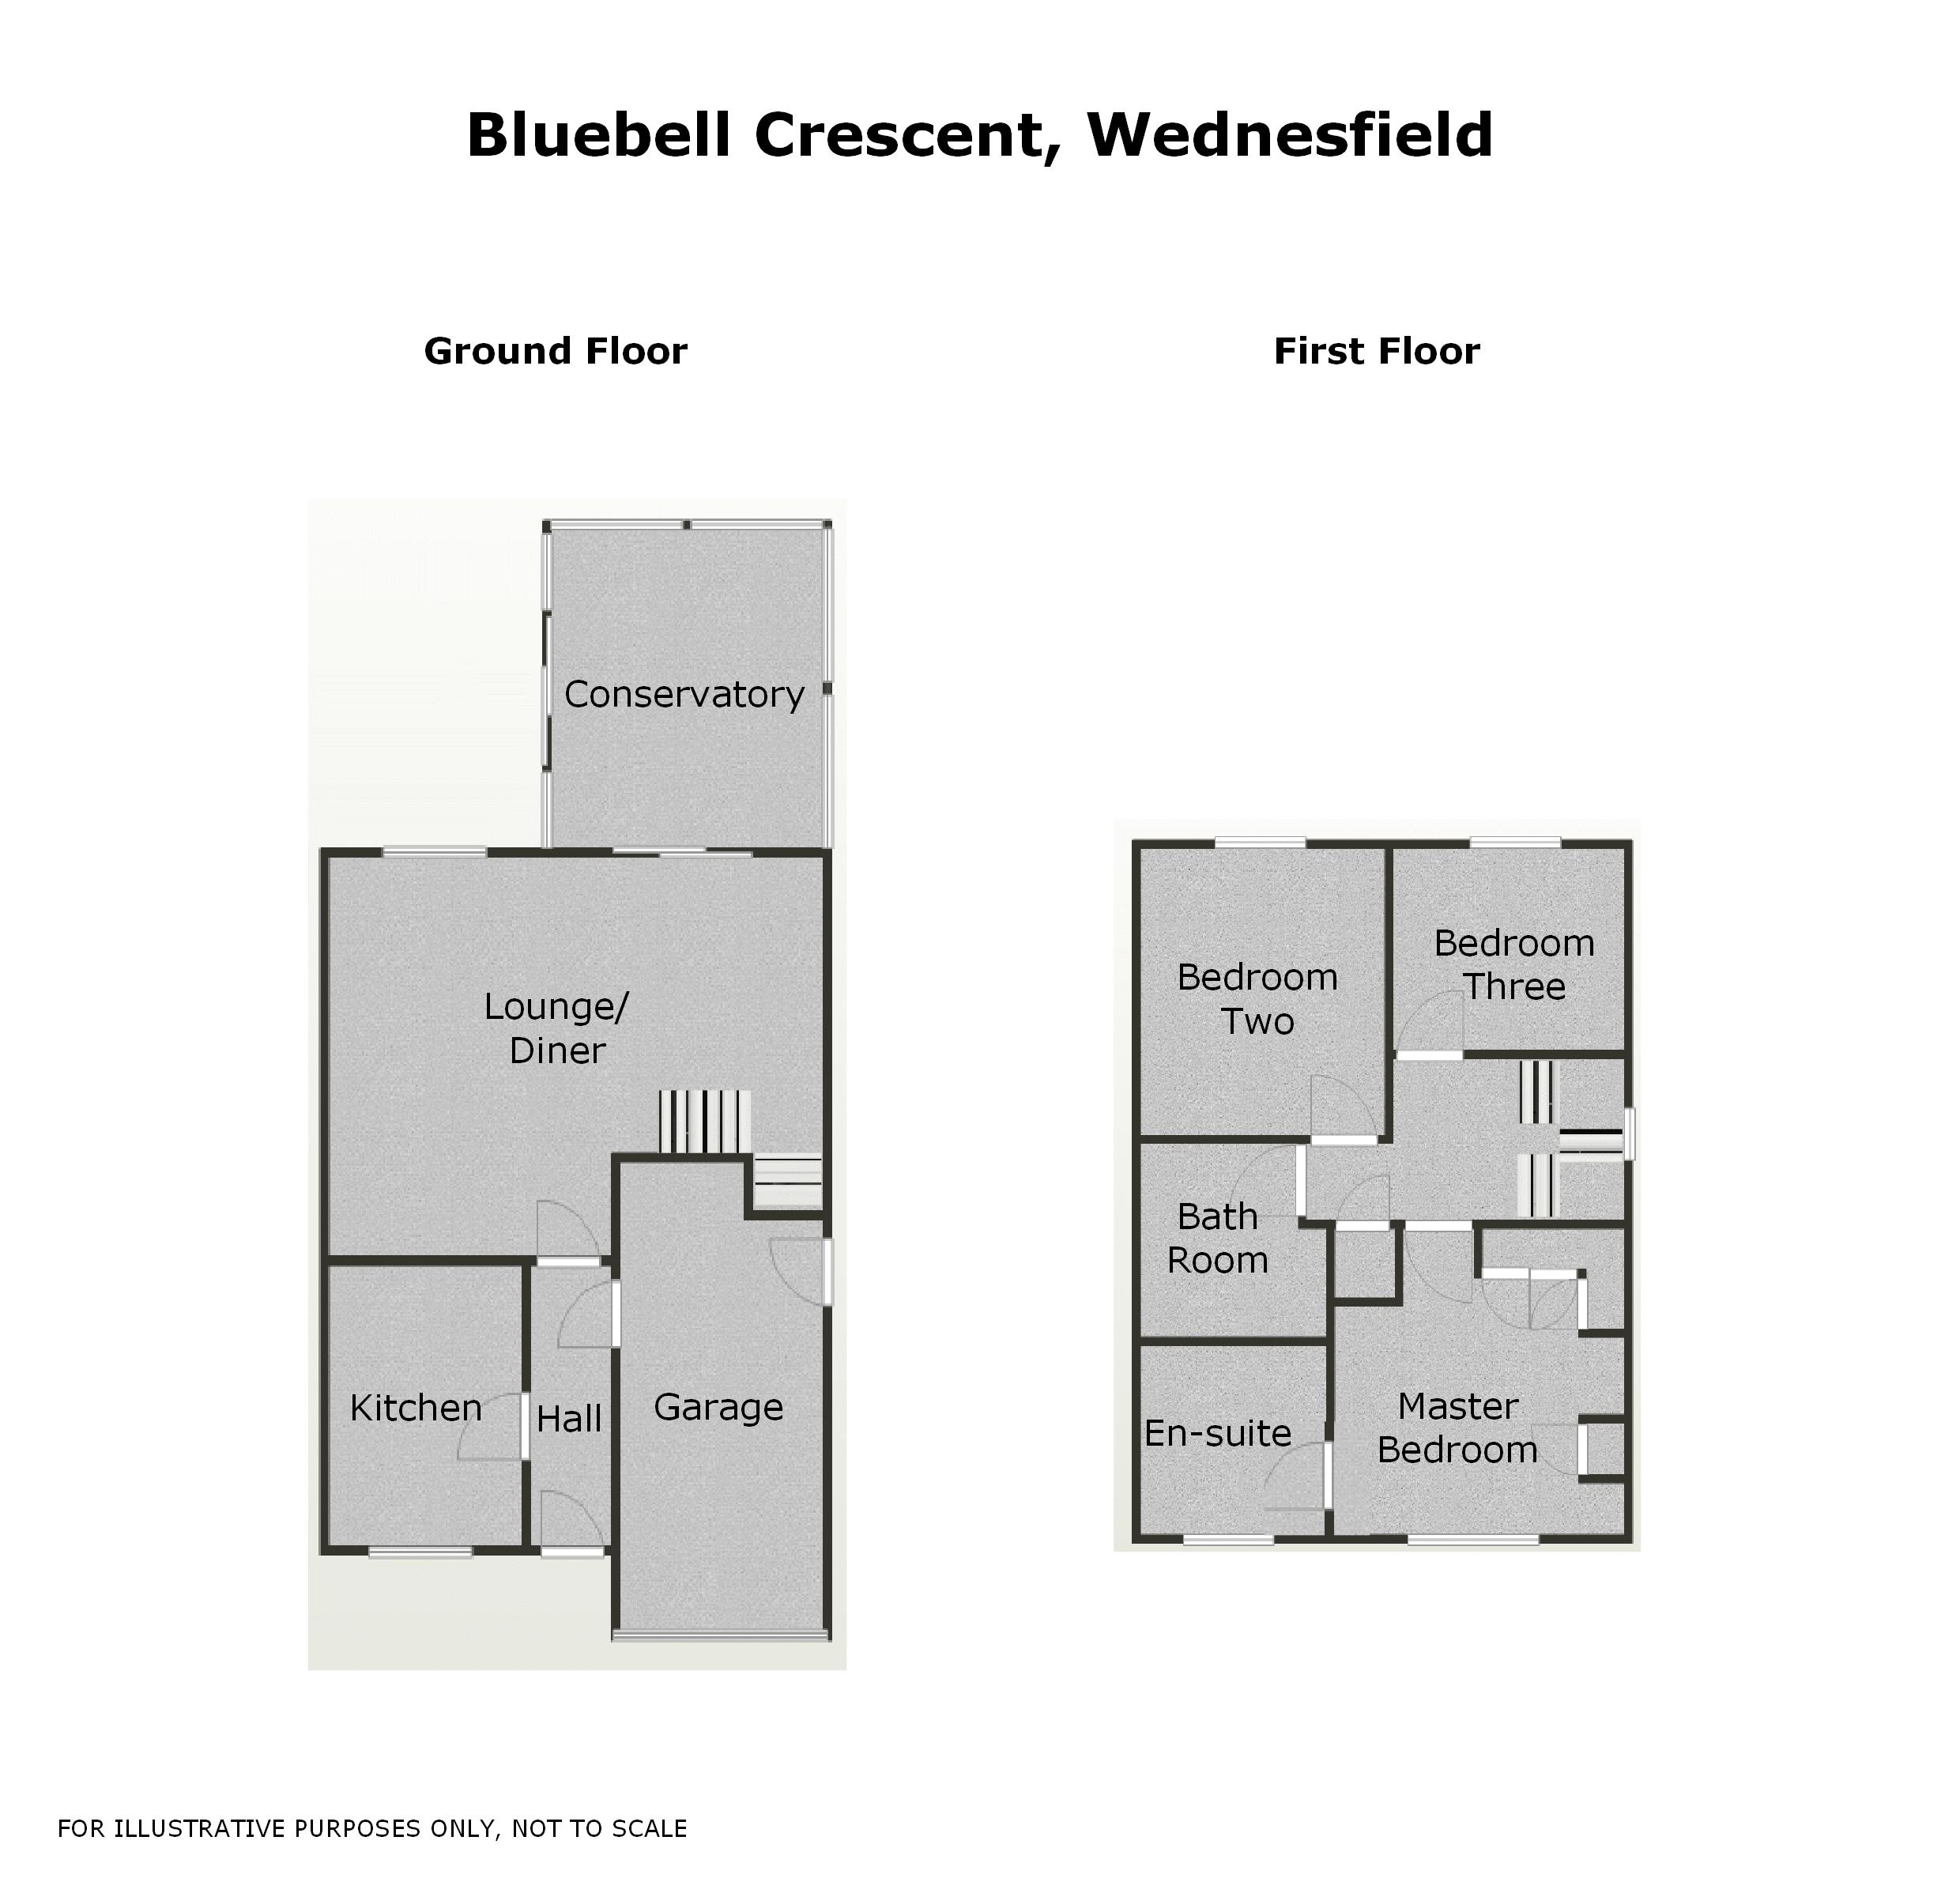 Property For Sale In Wednesfield Bluebell Crescent